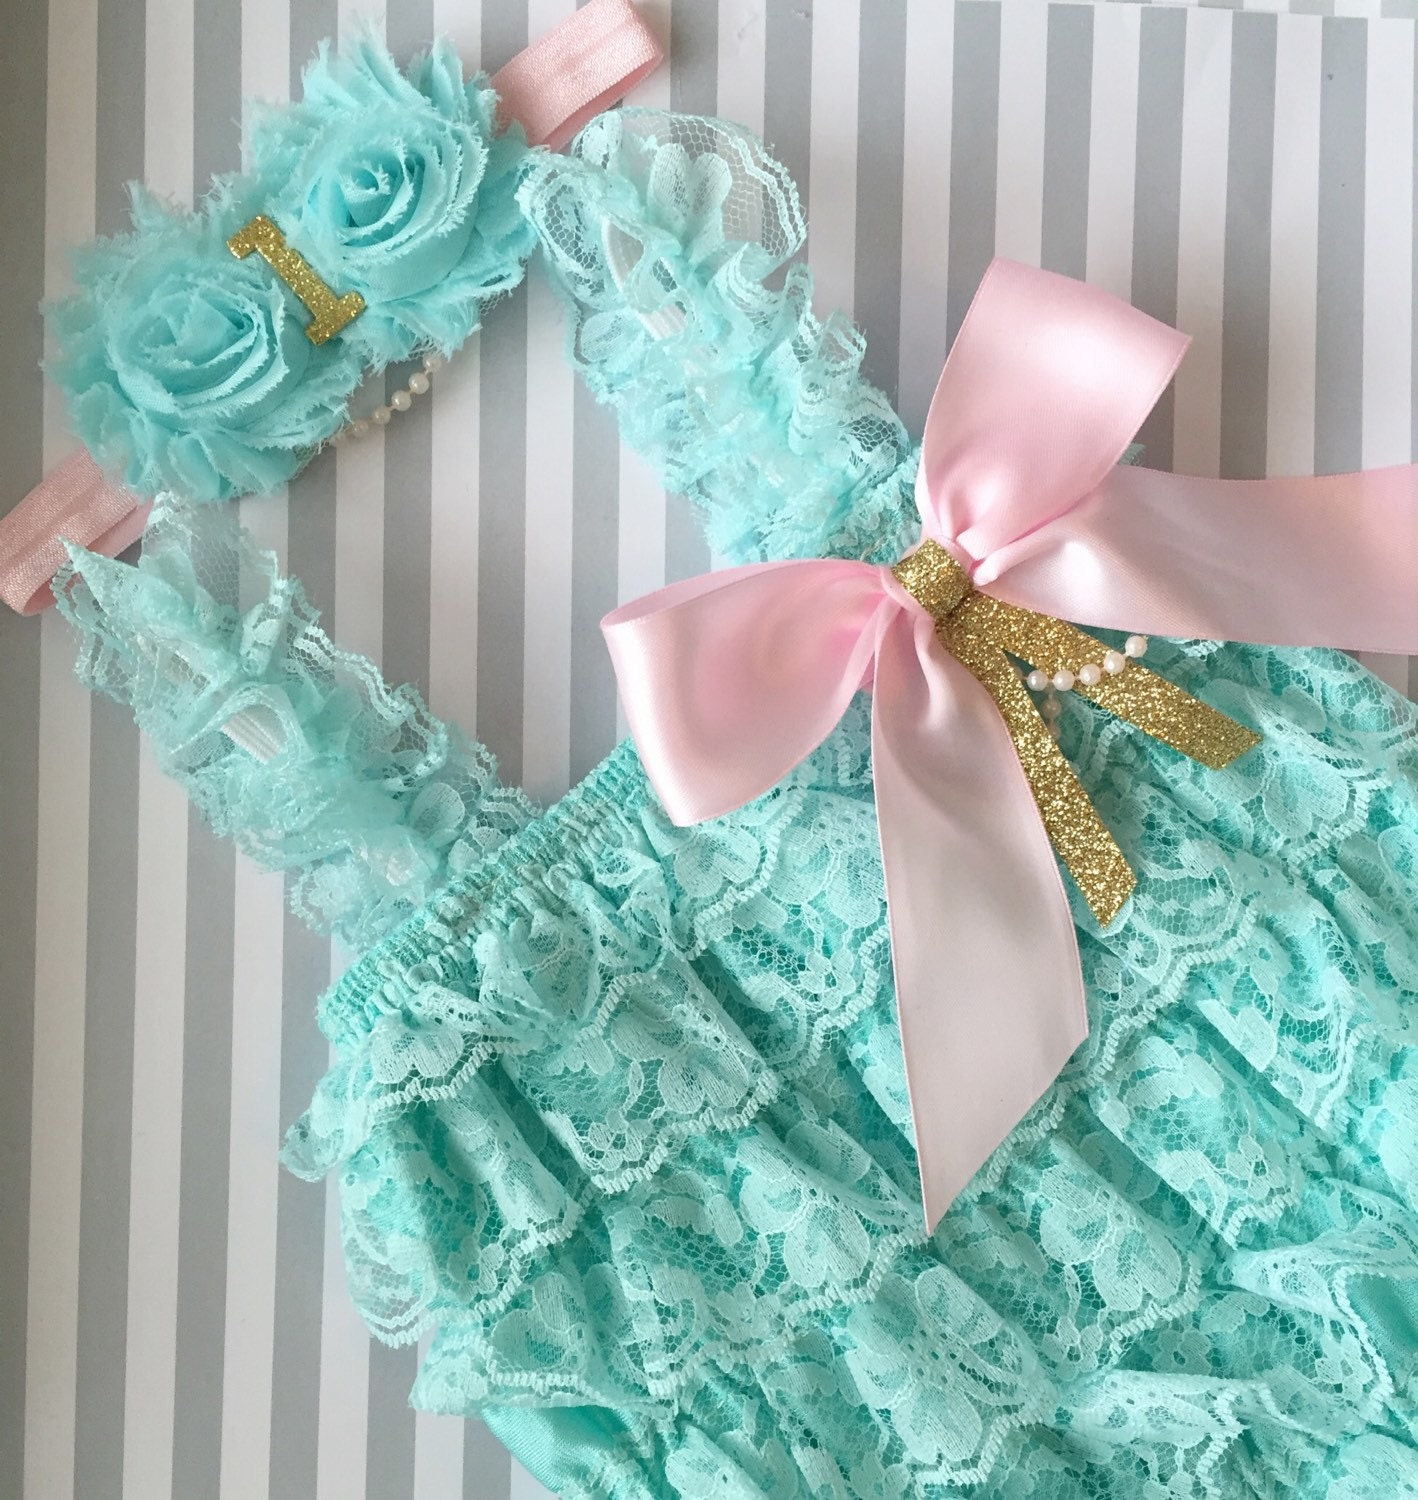 b438957fb443 Baby Girls Lace romper-aqua lace romper set-Pink aqua and gold 1st birthday  baby outfit-aqua and gold 1st birthday outfit-cake smash outfit